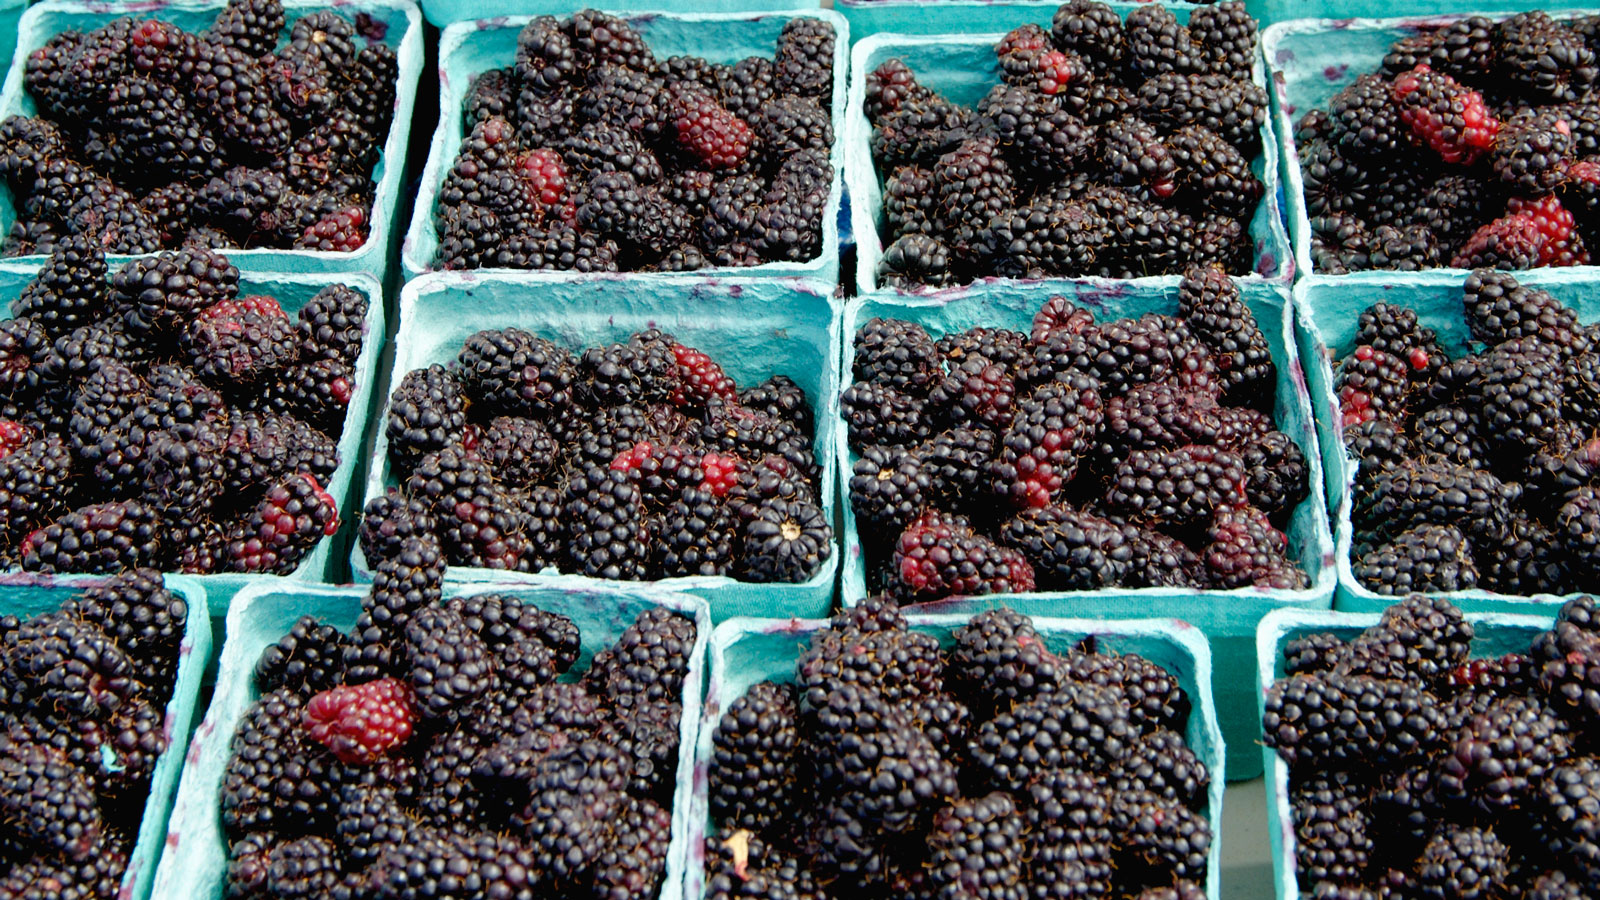 marionberries-blackberries-difference-between-FT-BLOG0617.jpg